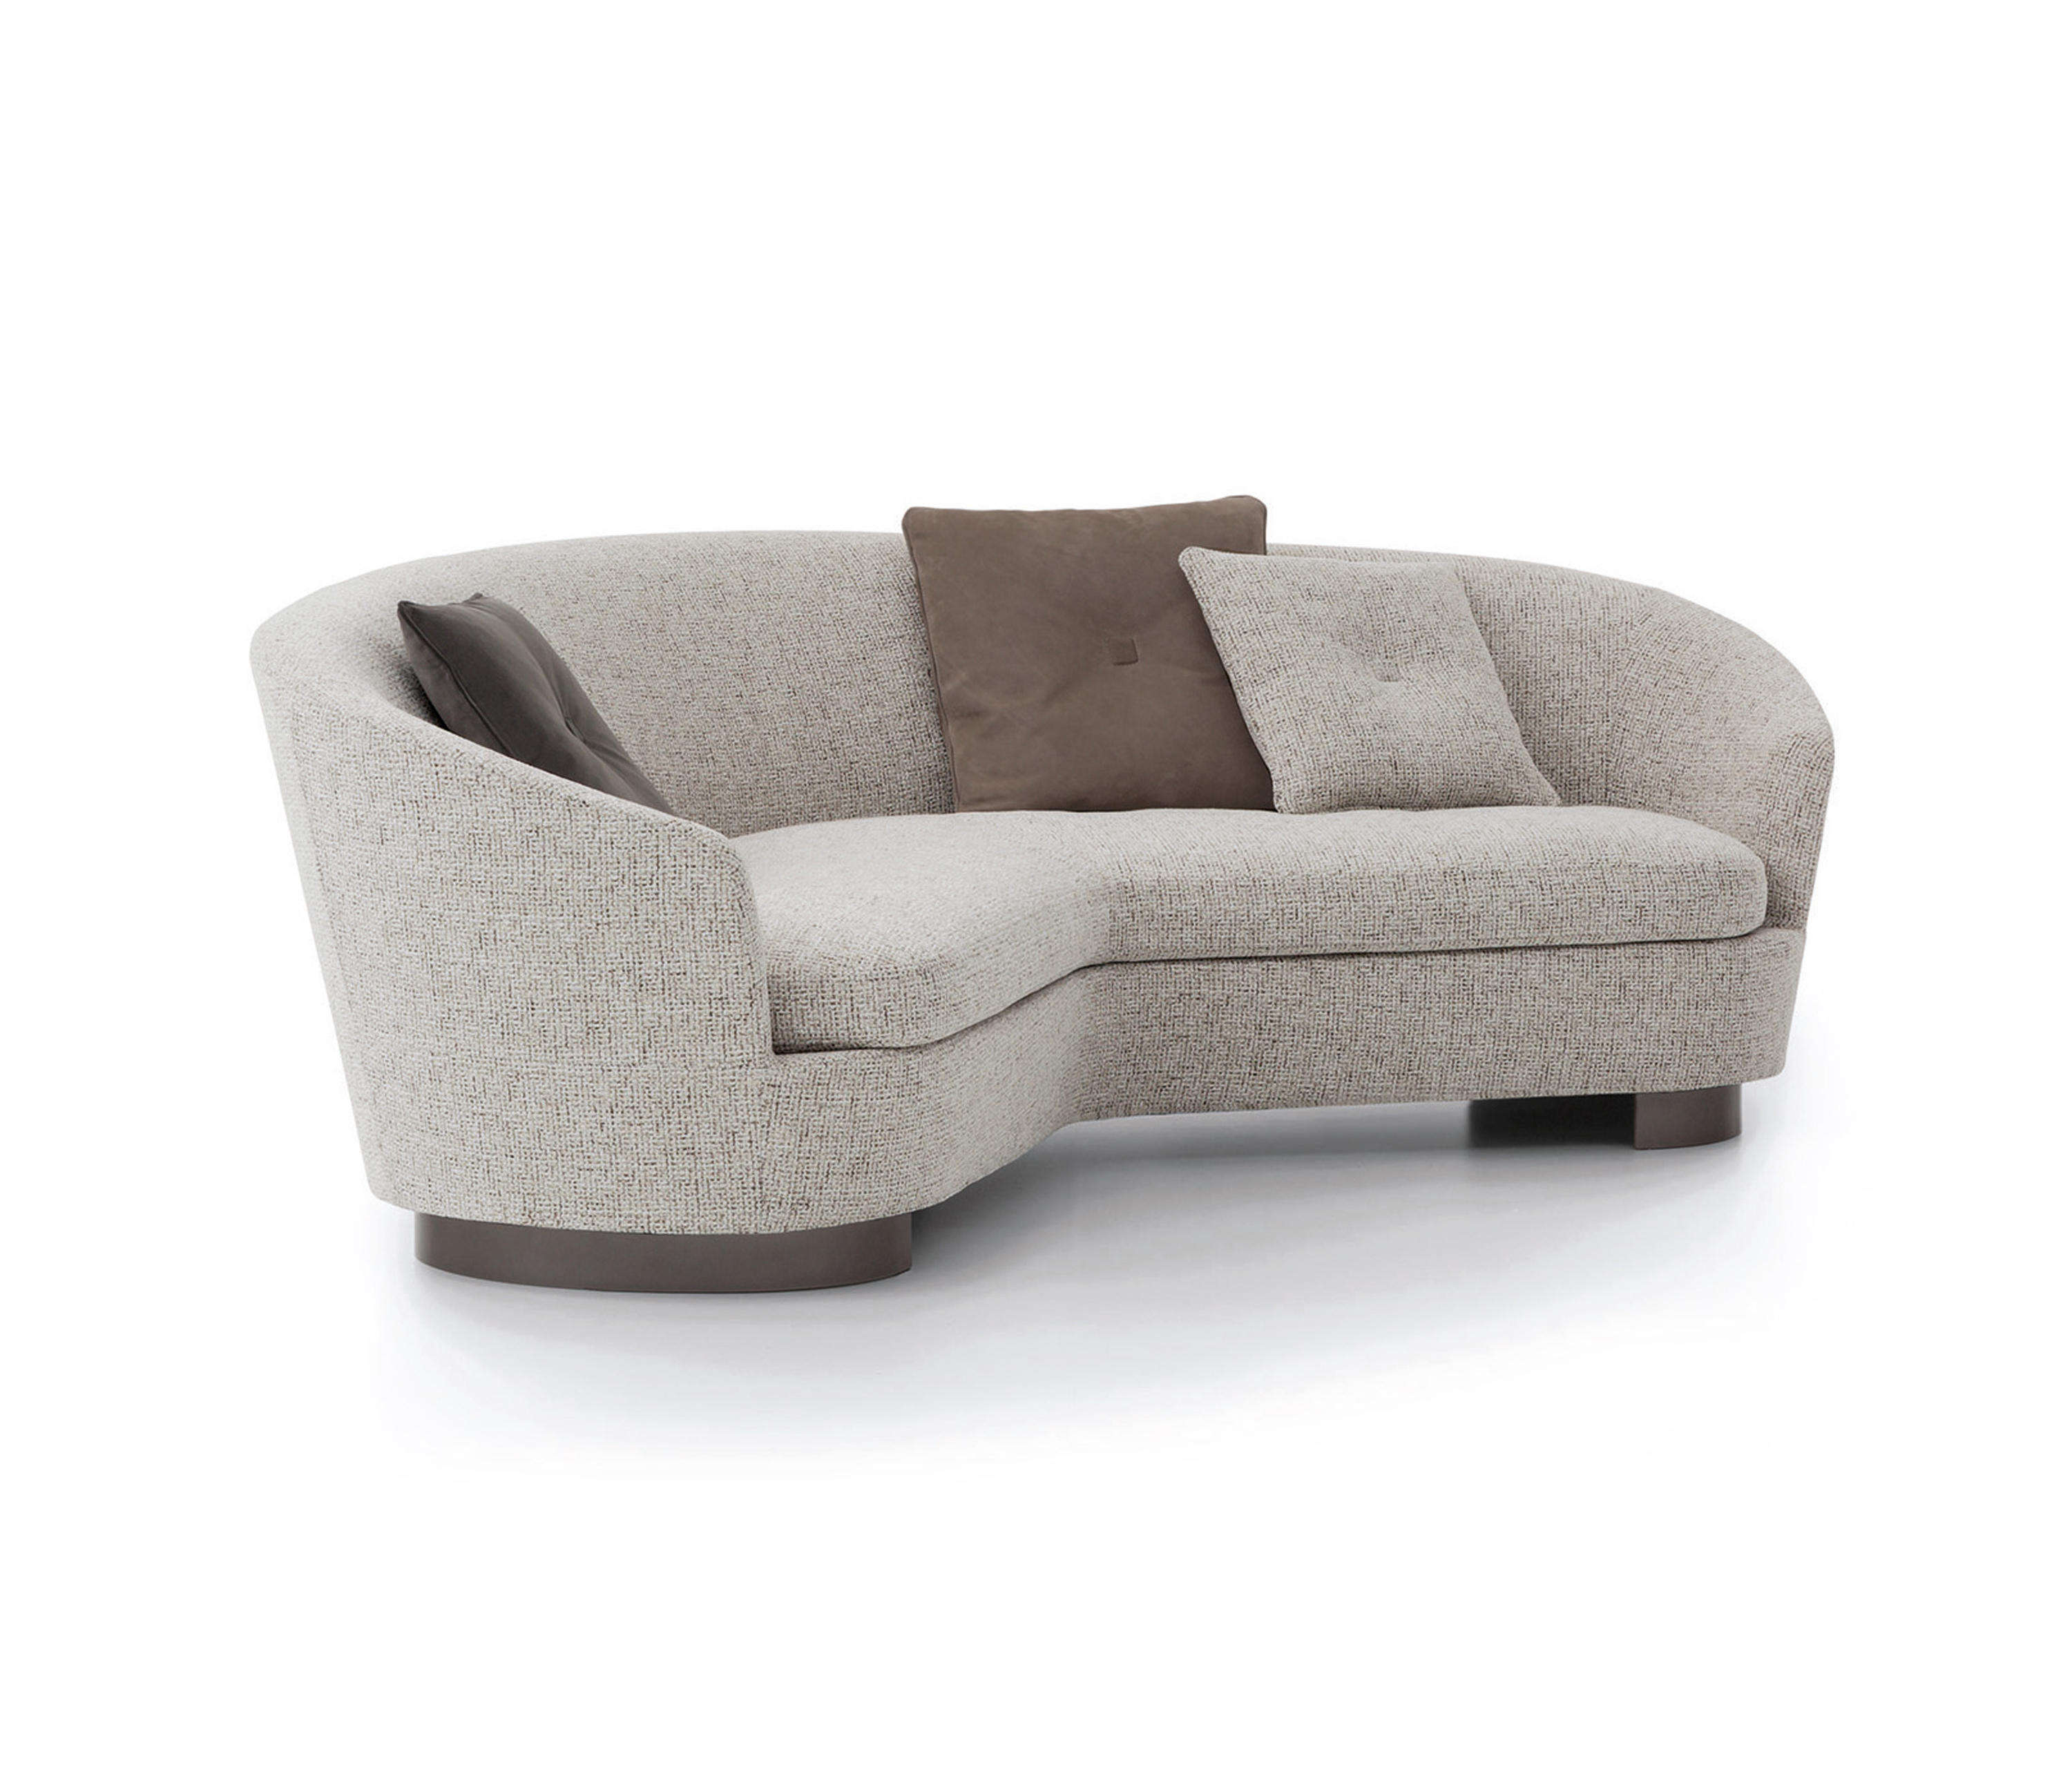 Curved 3 seater hotel lounge sofa hotel furniture Italy design Hotel reception sofa